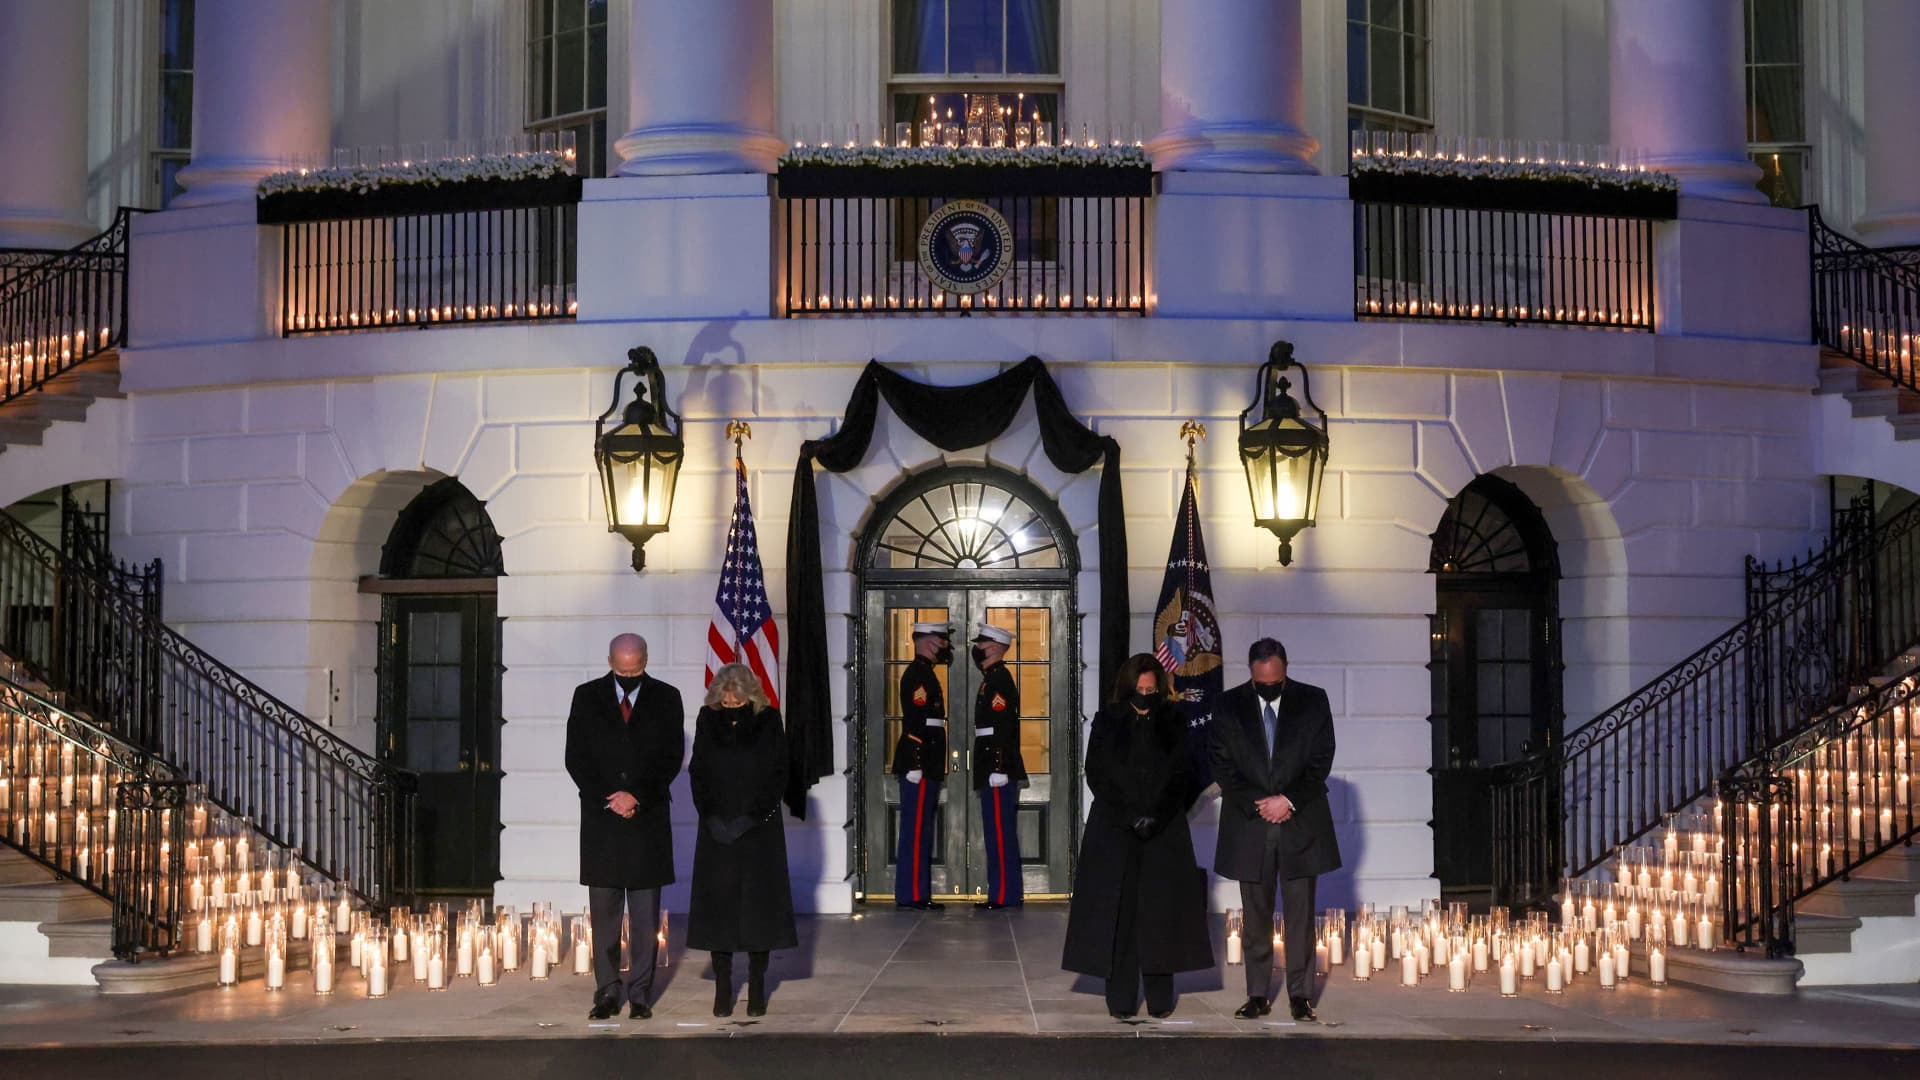 President Joe Biden, his wife Jill Biden, U.S. Vice President Kamala Harris and Second Gentleman Doug Emhoff attend a moment of silence and candle lighting ceremony to commemorate the grim milestone of 500,000 U.S. deaths from the coronavirus disease (COVID-19) at the White House in Washington, U.S., February 22, 2021.